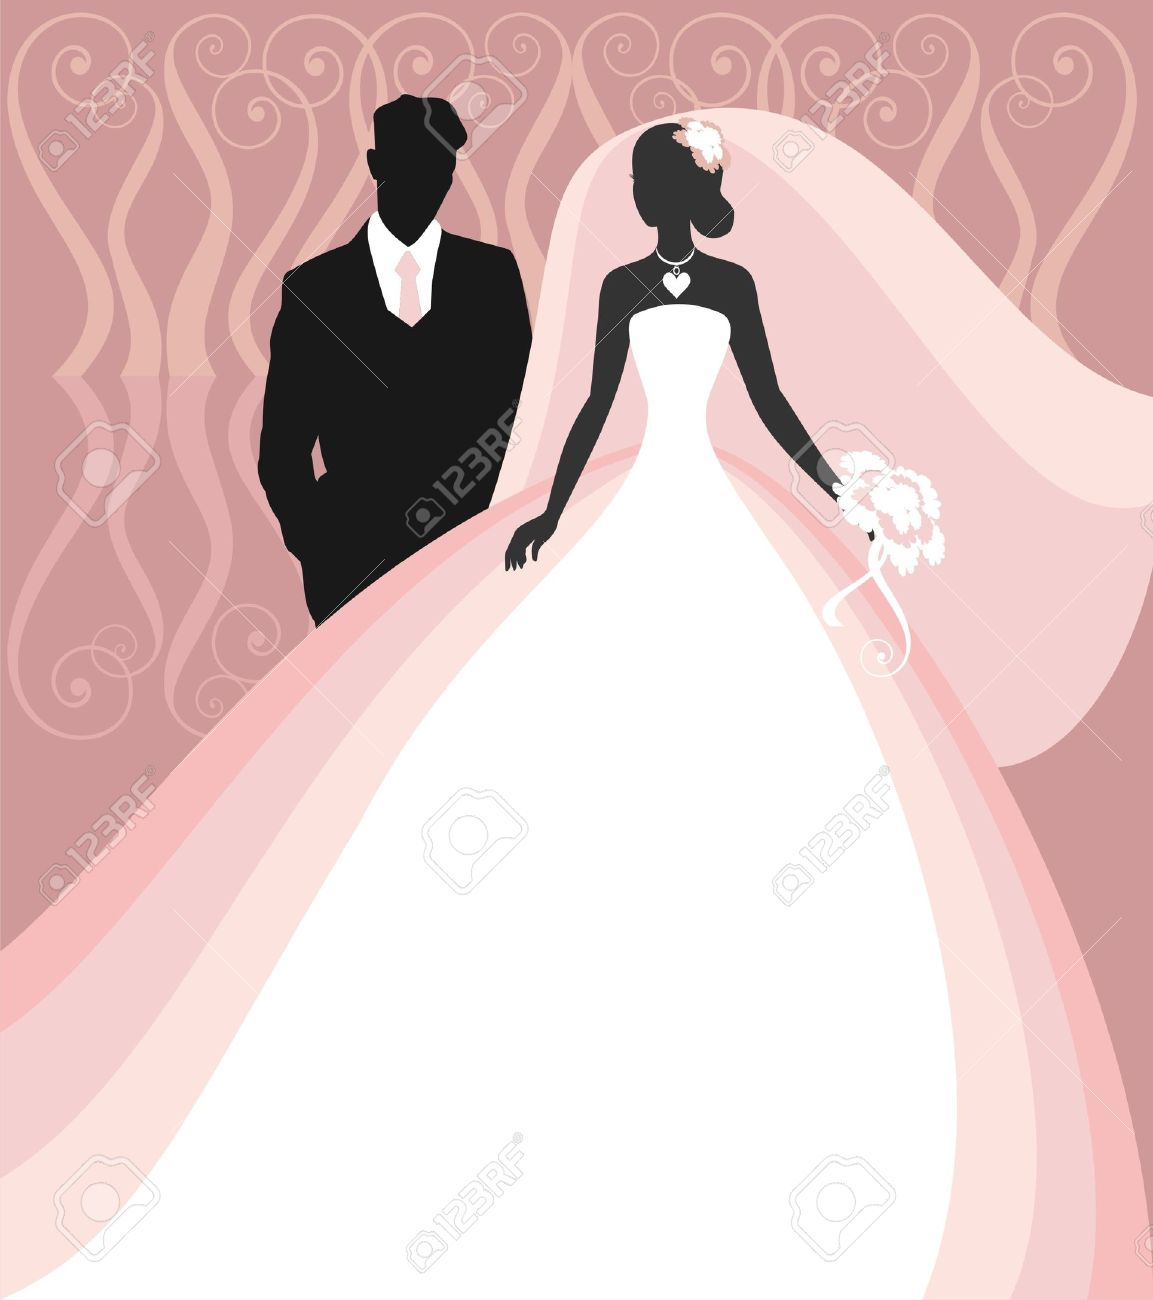 Invitation cards with the bride in a veil - 14977466